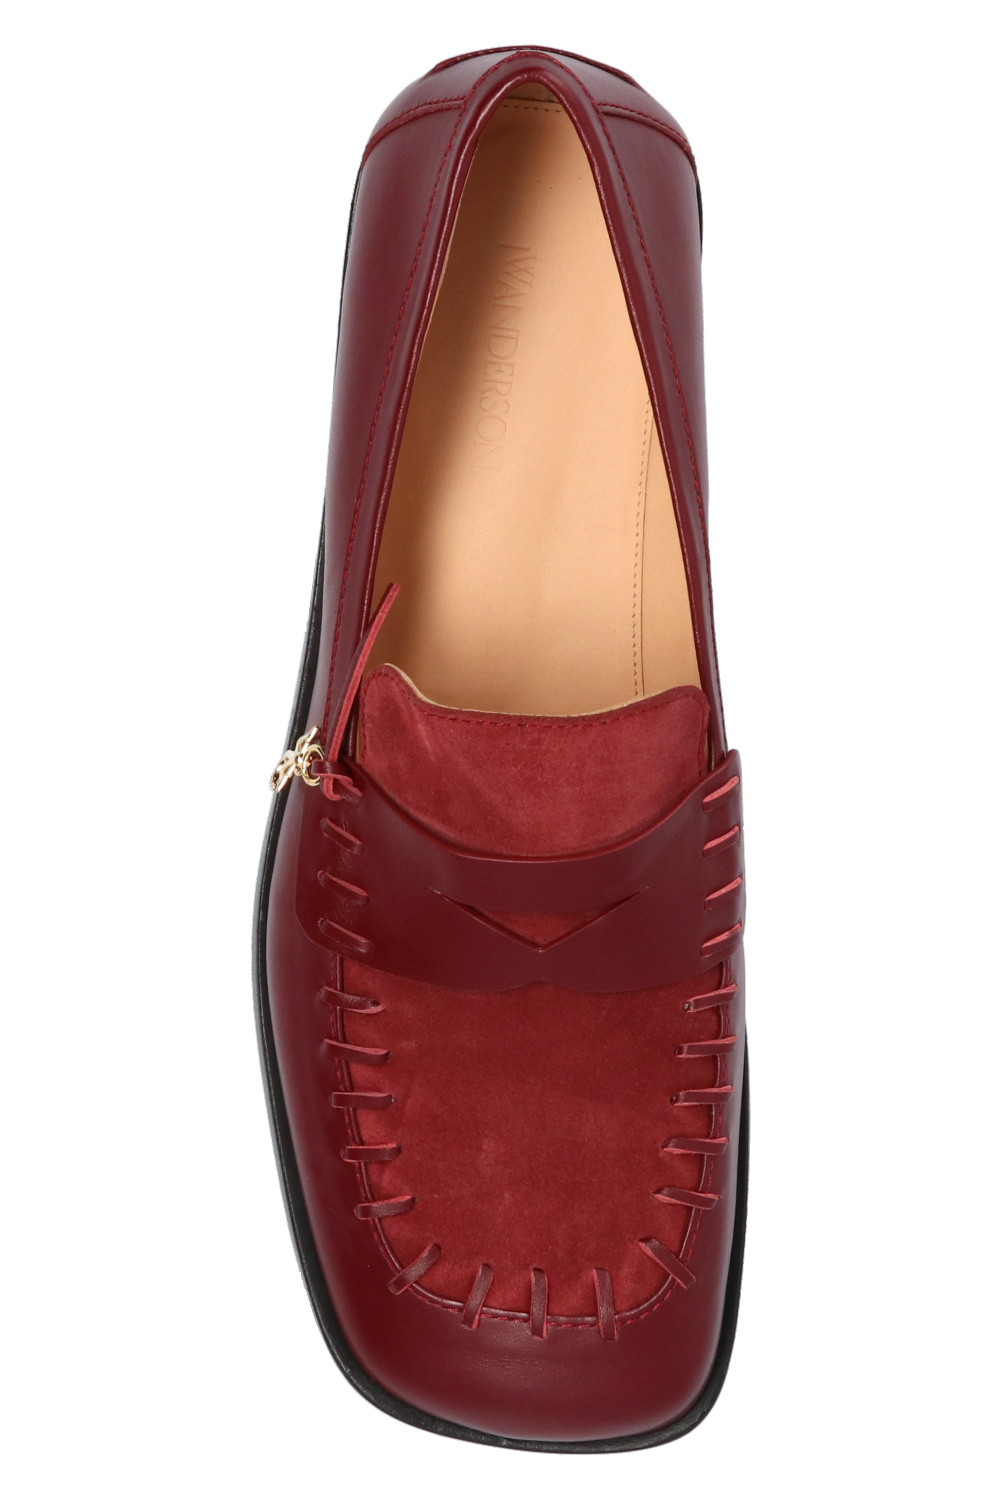 J.W. Anderson Leather loafers